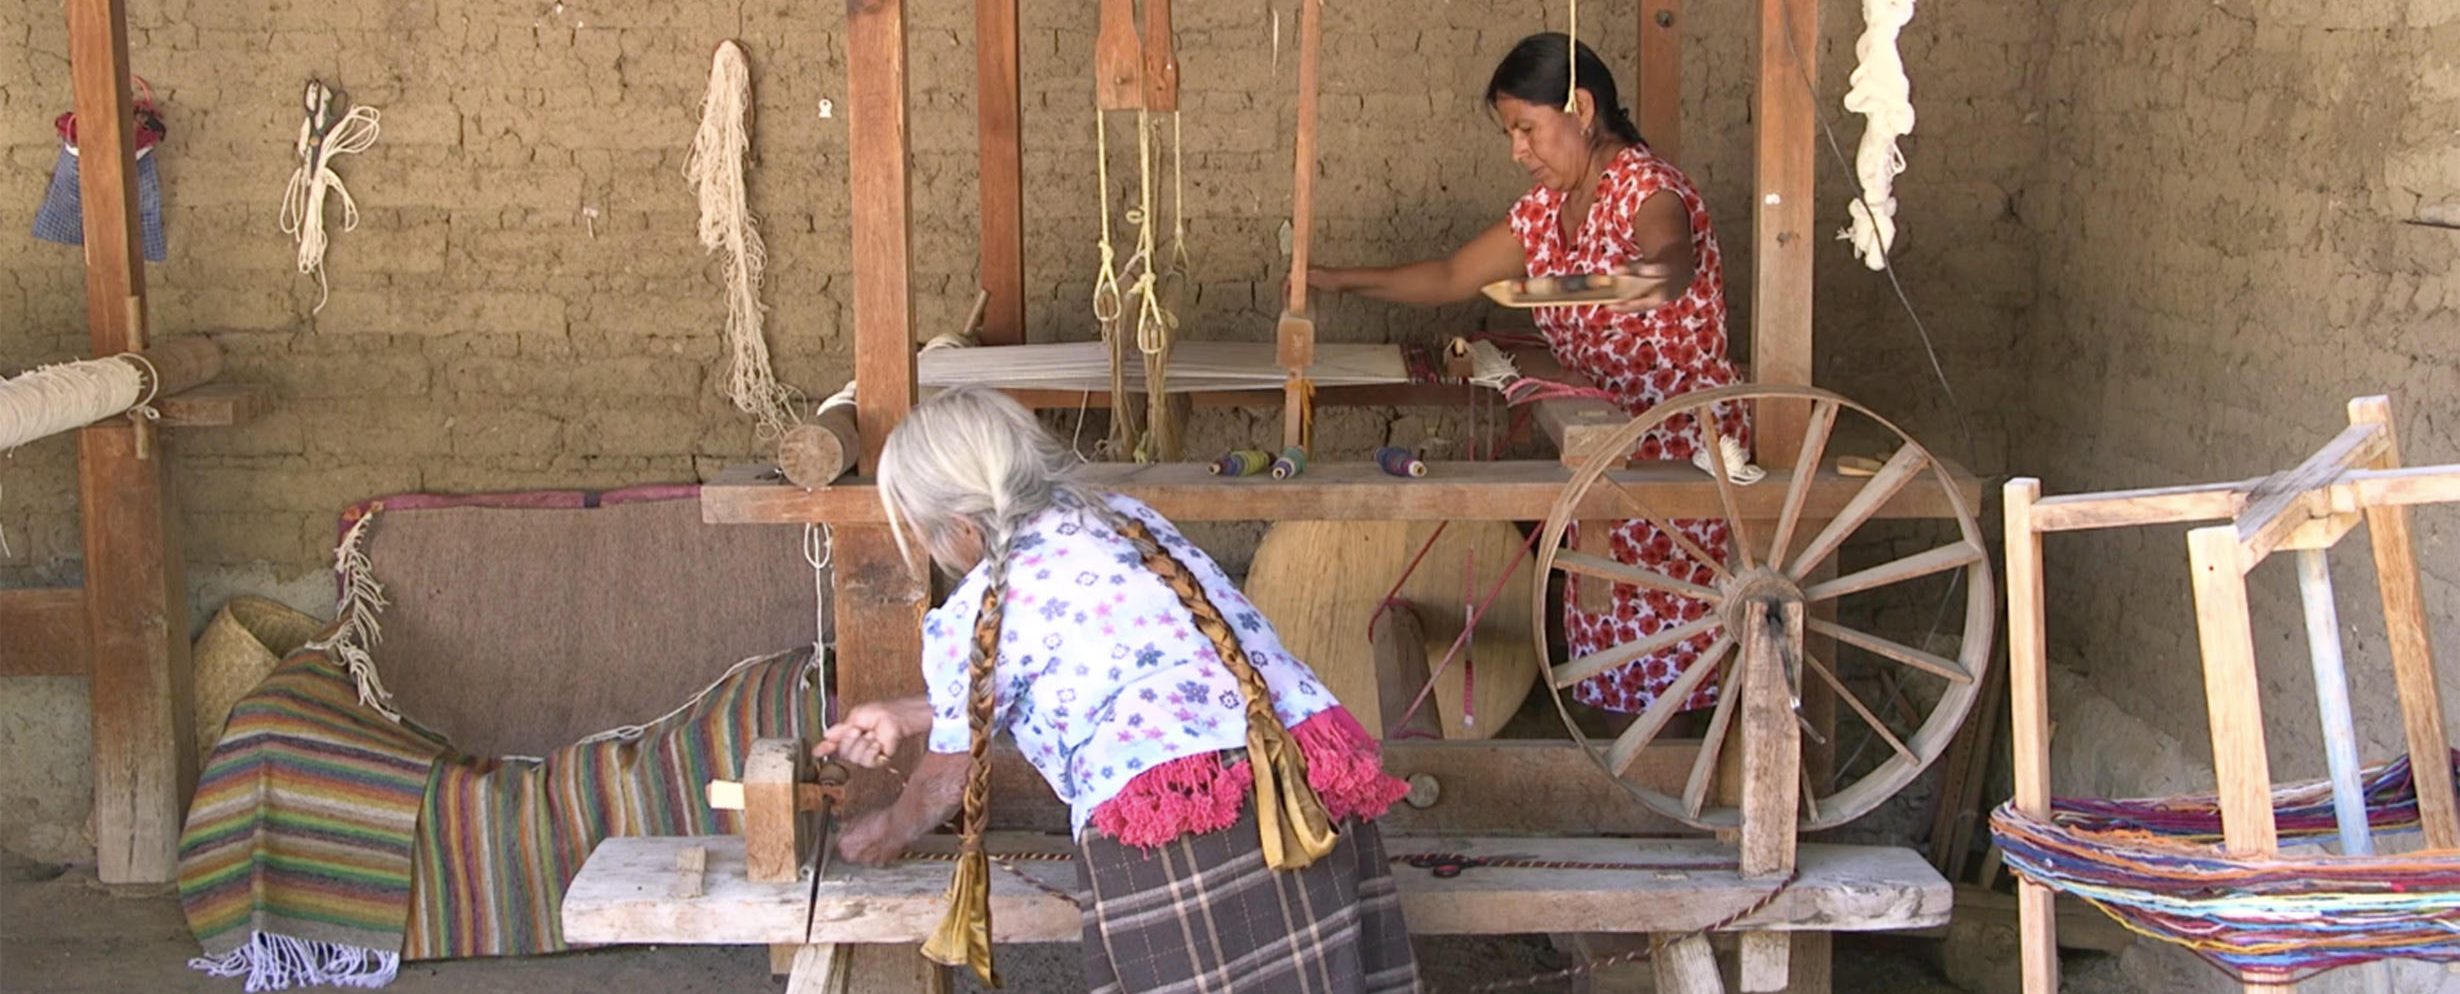 REFUSING TO LET GO / DUXH BENIGULUN  (Teresa Martinez Chavez, Mexico, 2019, 19 min.)  Director in Attendance   An 88-year-old Zapotec weaver in a small town in Mexico, Dona Rachel struggles with memory loss. See how her weaving lessons spark her memory and strengthen family relationships while passing down cultural legacy.  Plays in the    Emerging Visual Anthropologists Showcase   .    Saturday, October 19, 11:30am